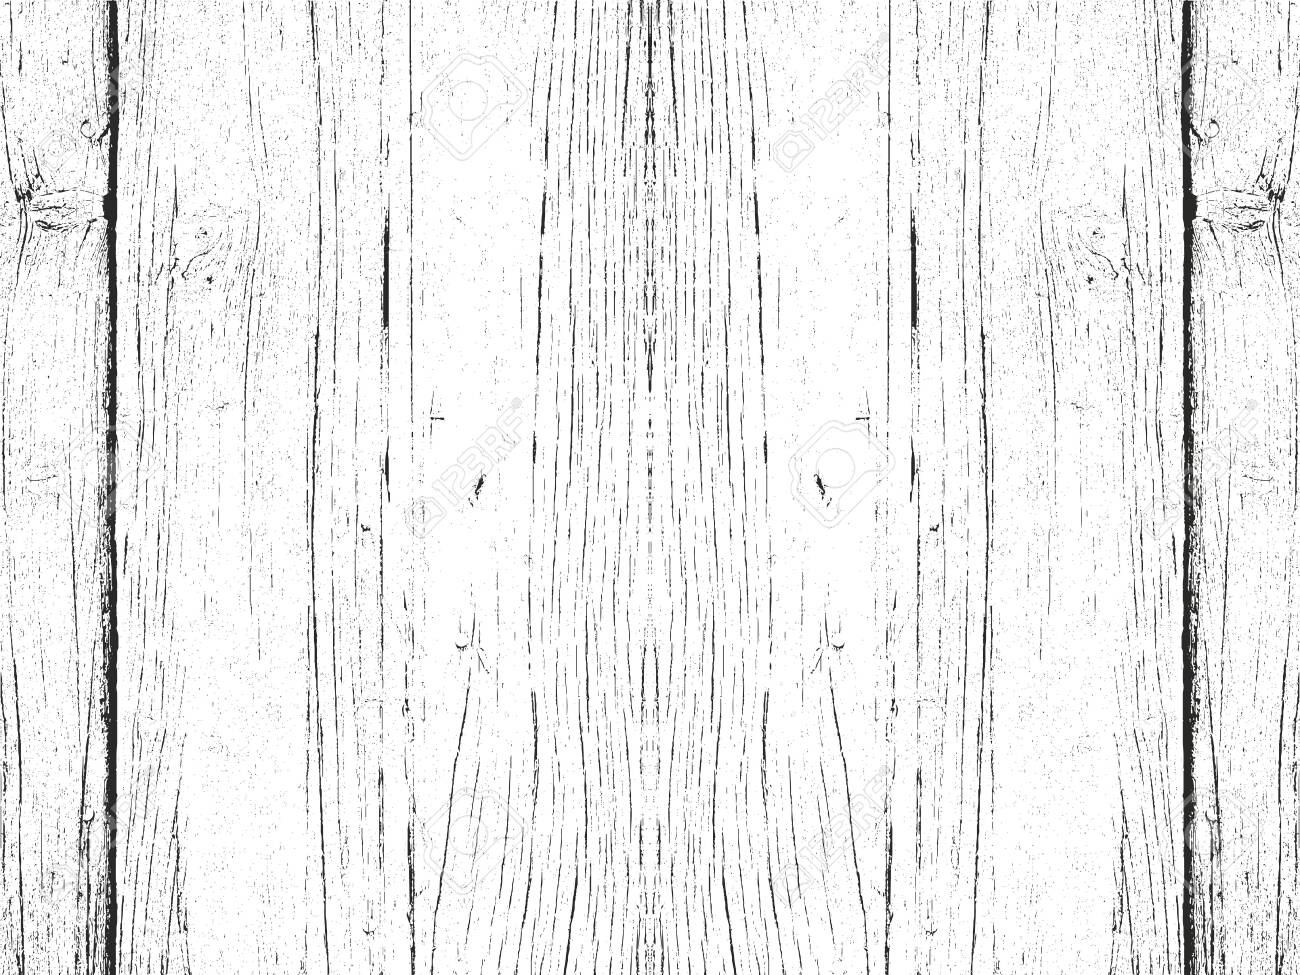 Distressed overlay wooden plank texture, grunge background. abstract halftone vector illustration - 140101728